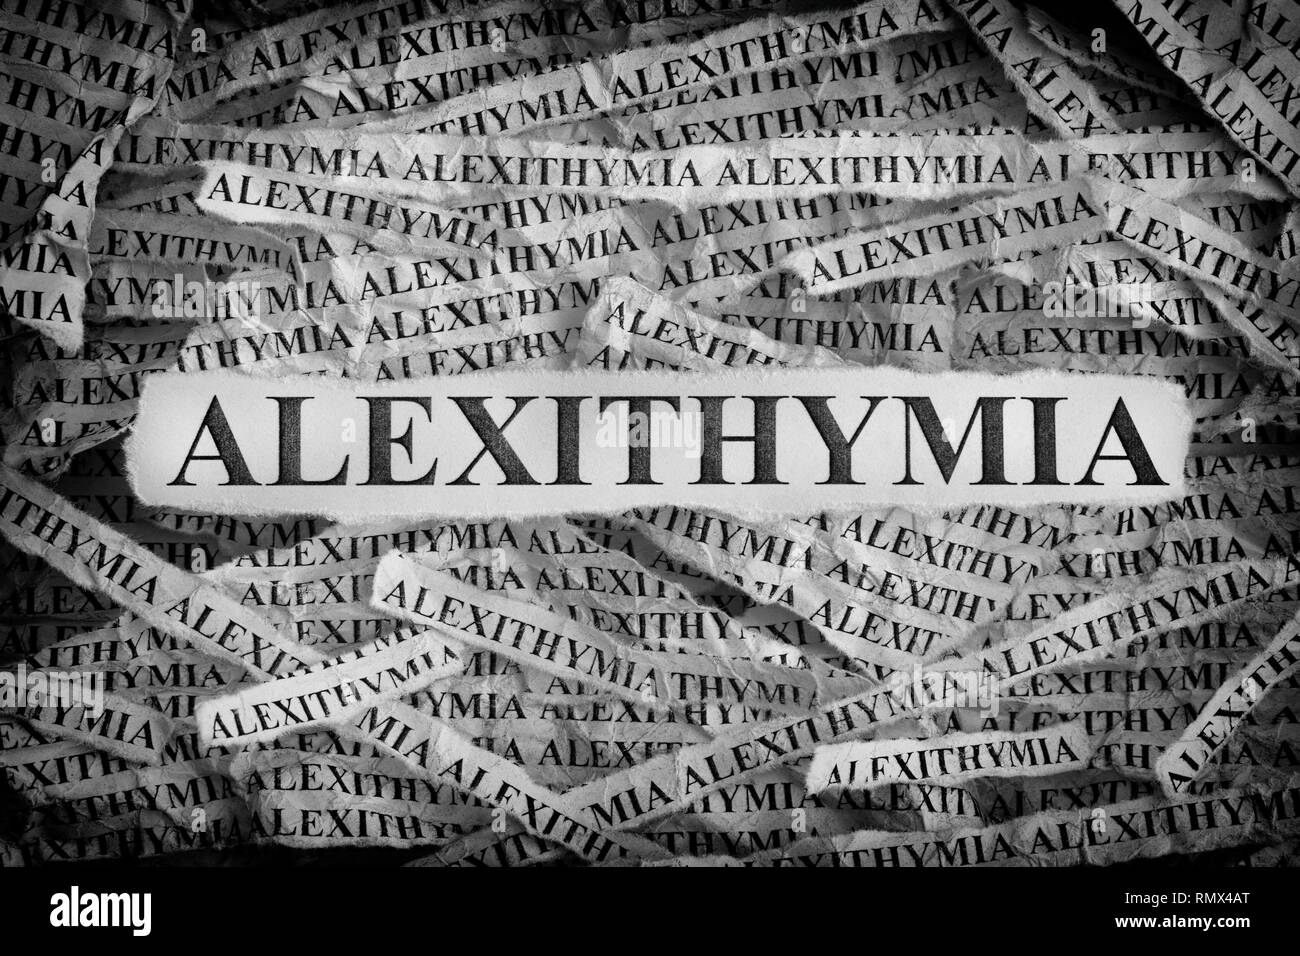 Alexithymia. Torn pieces of paper with the words Alexithymia. Concept image. Black and White. Close up. - Stock Image